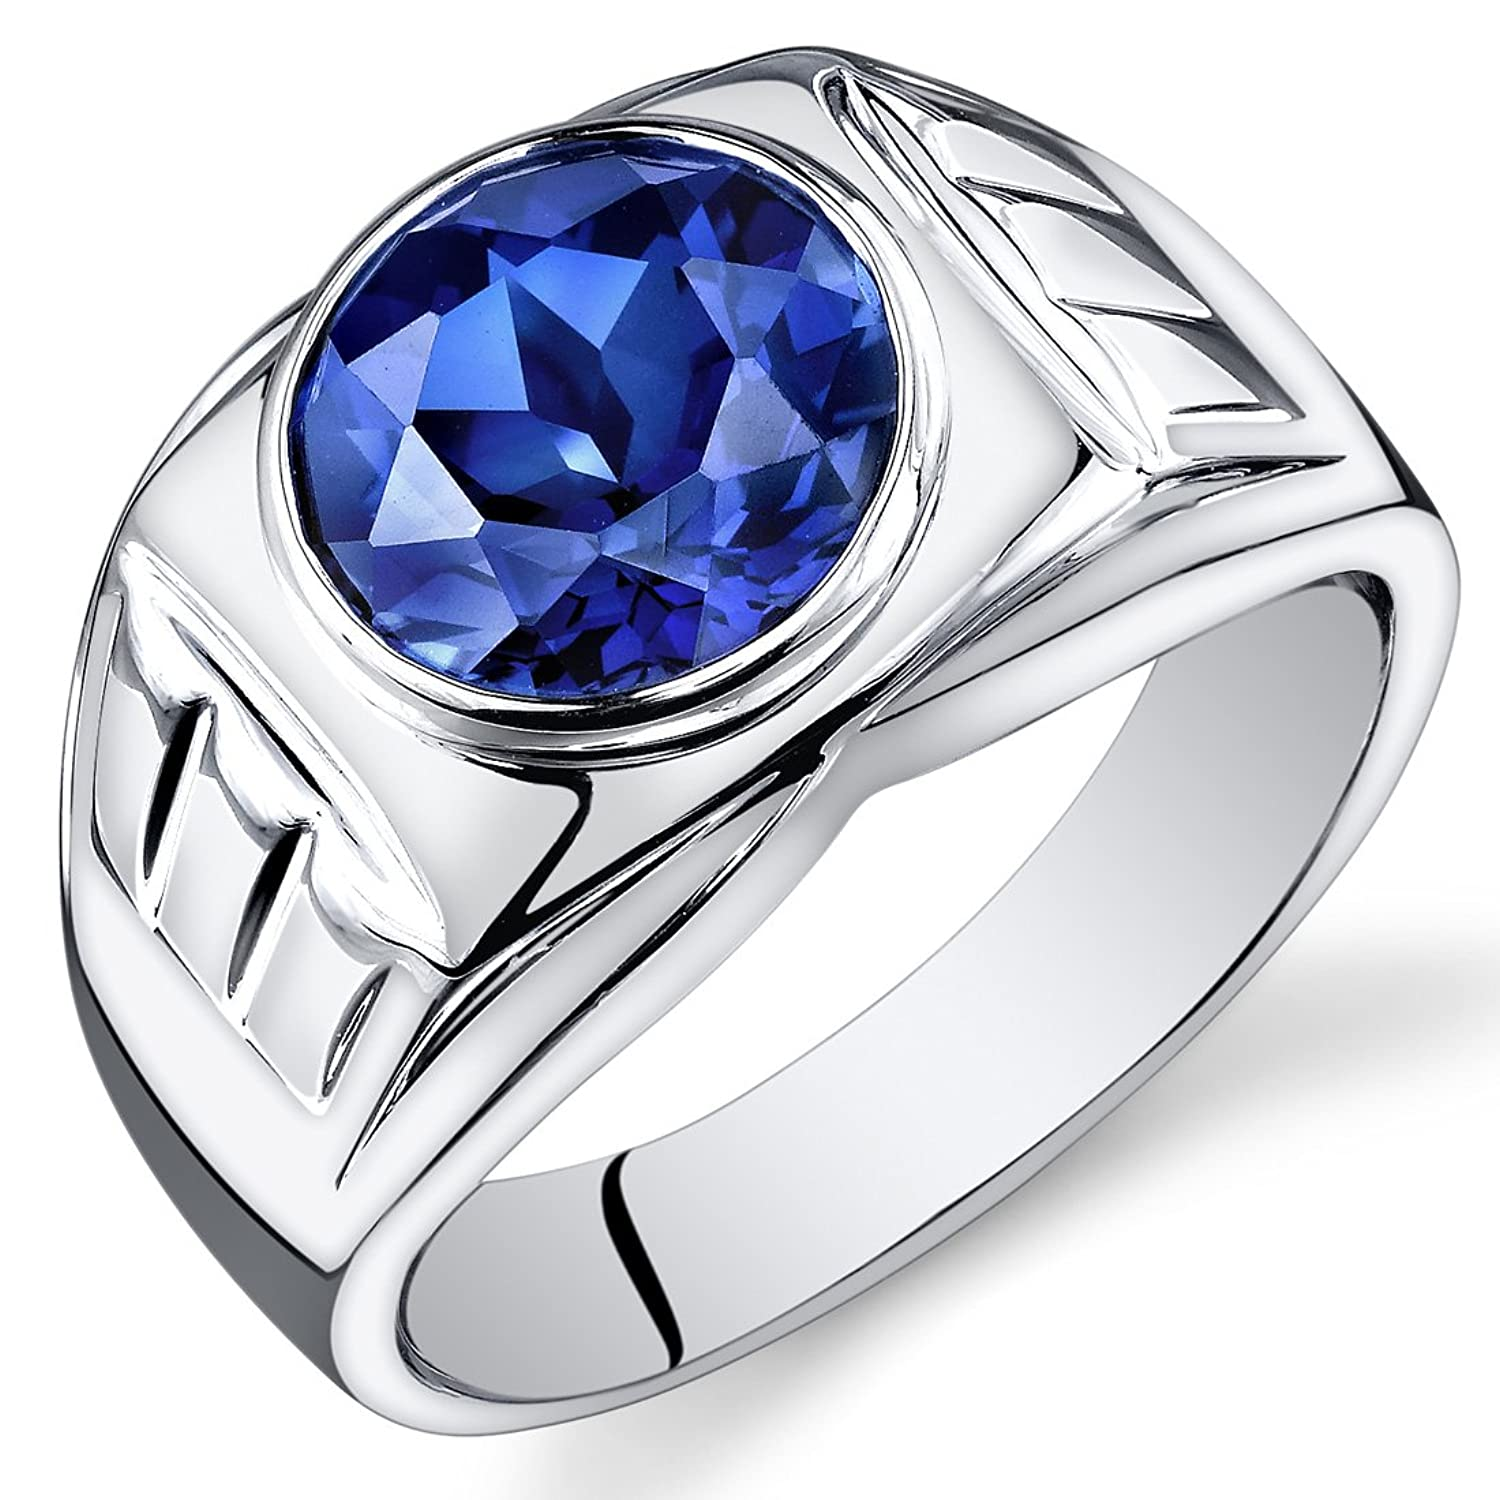 estate sapphire jewelry carats burma gemstones untreated rings ring saffire image